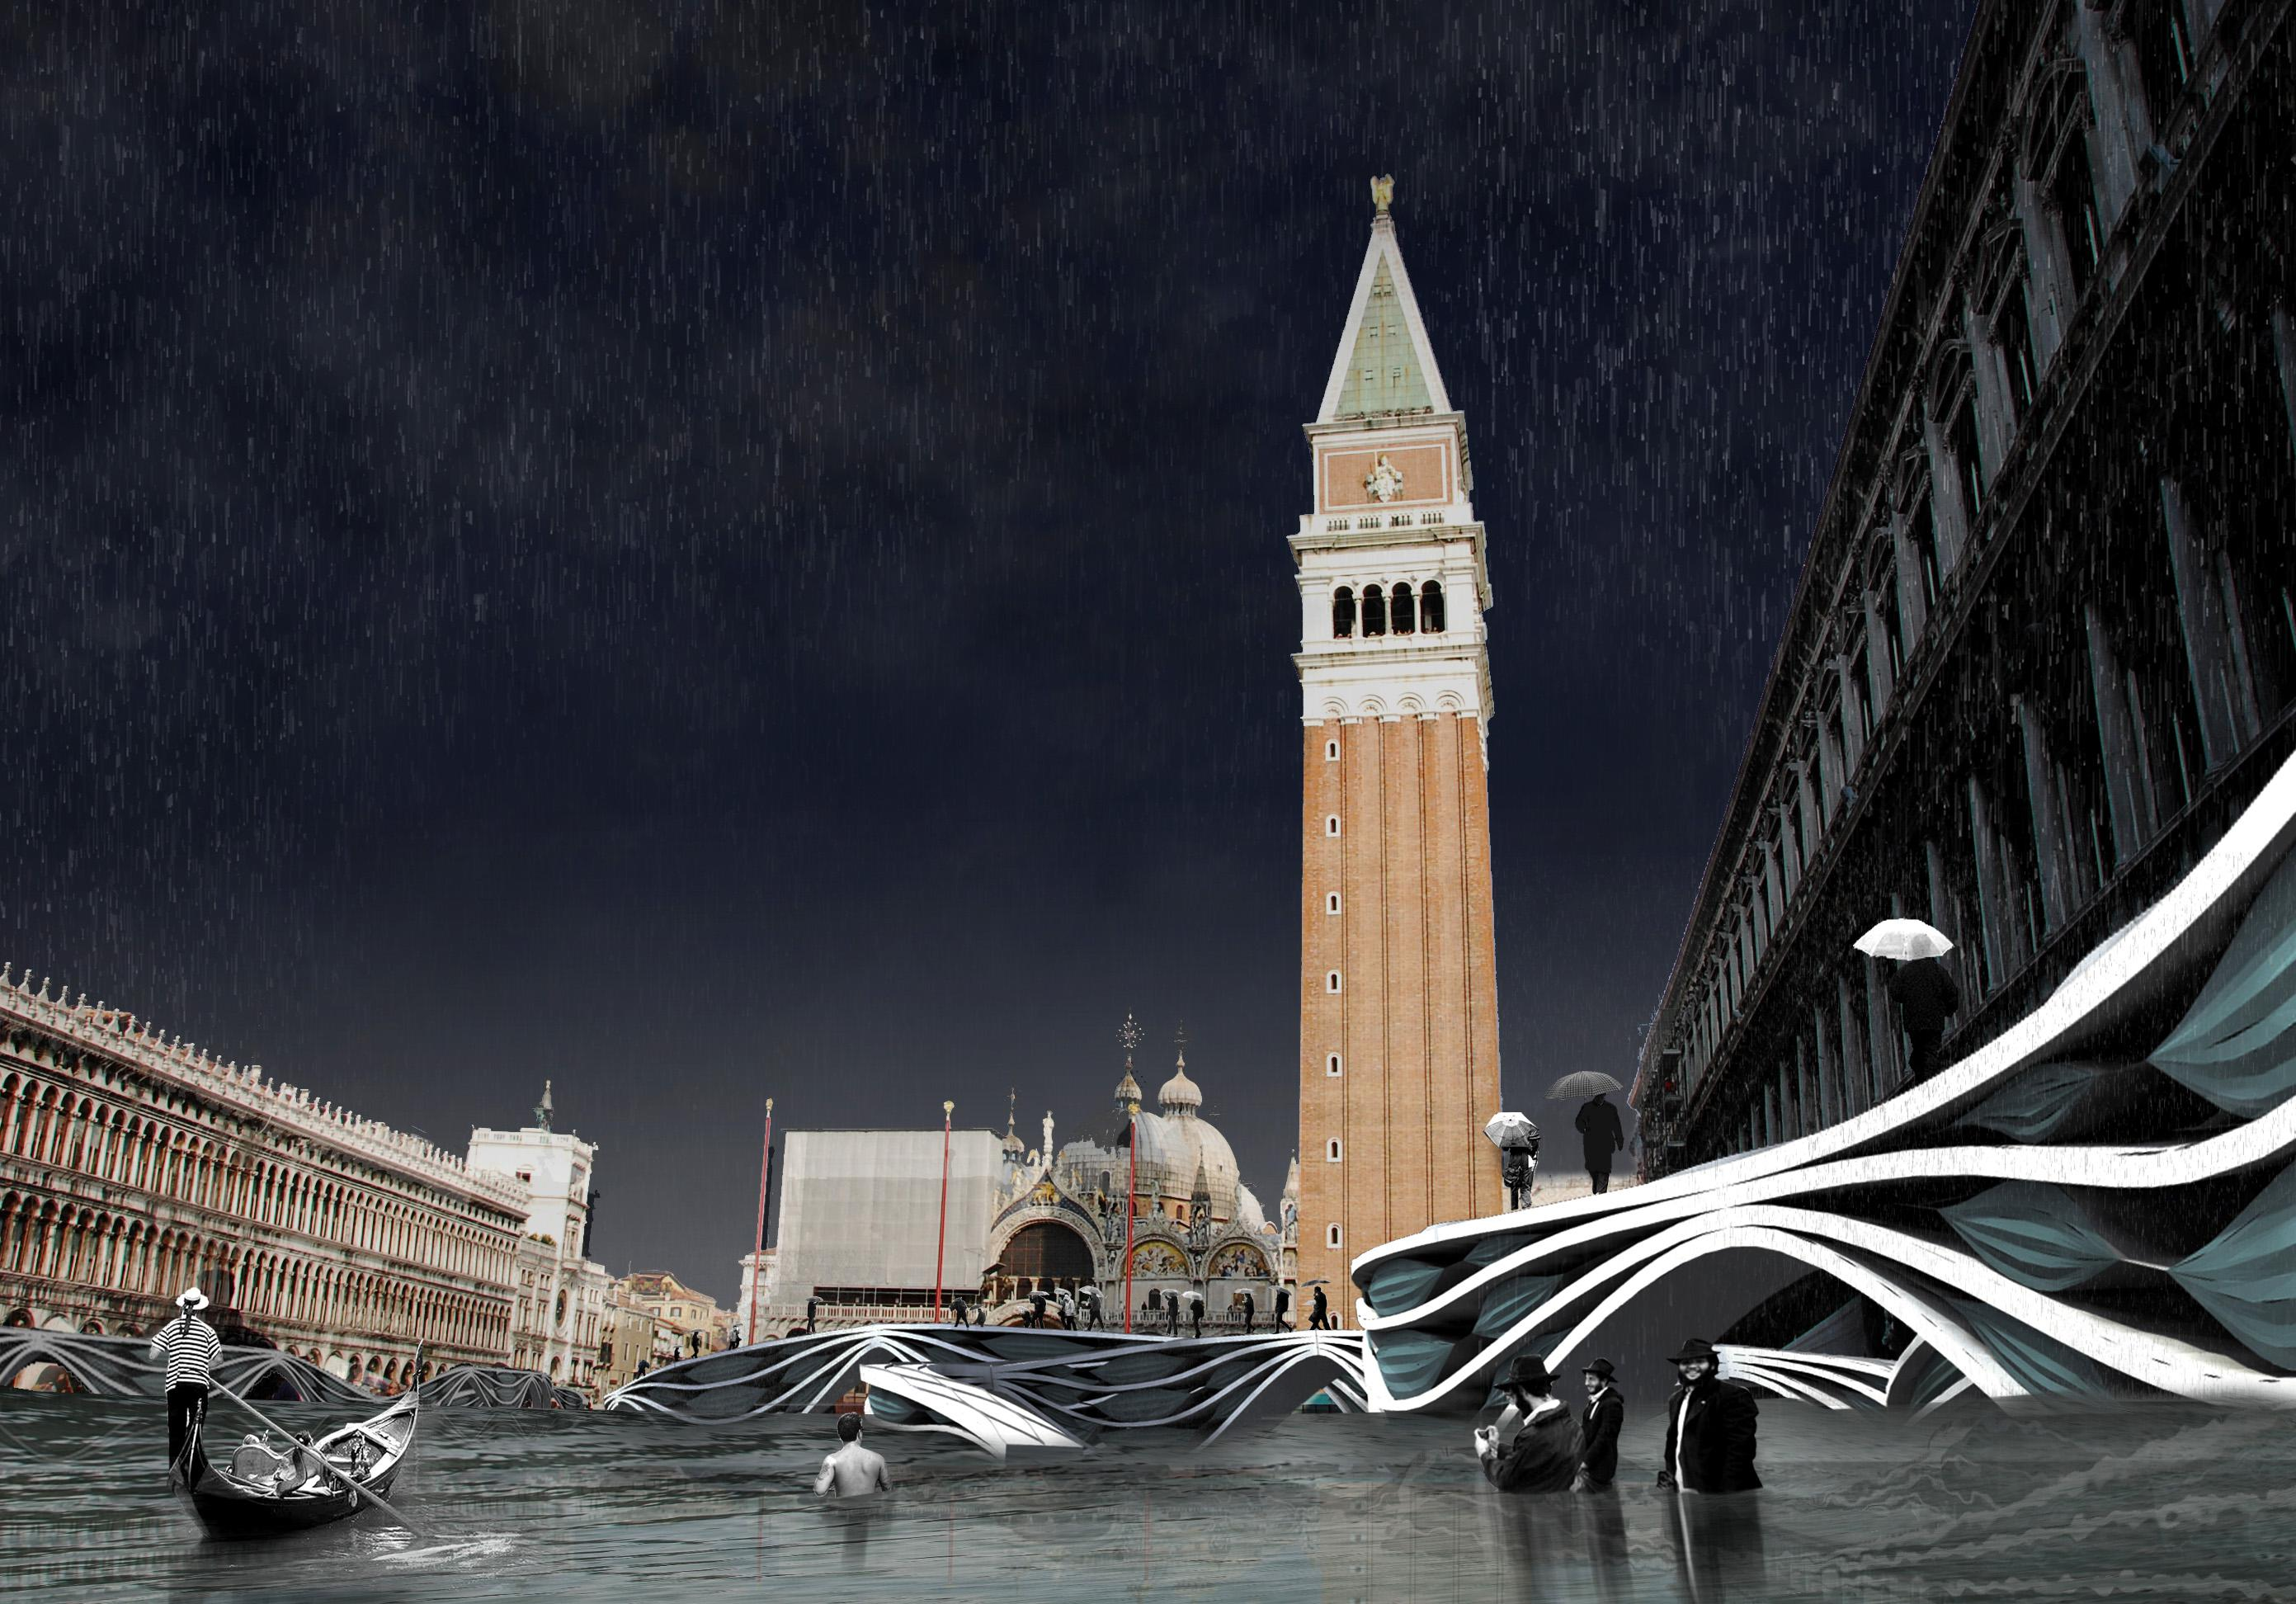 Inflatable Venice